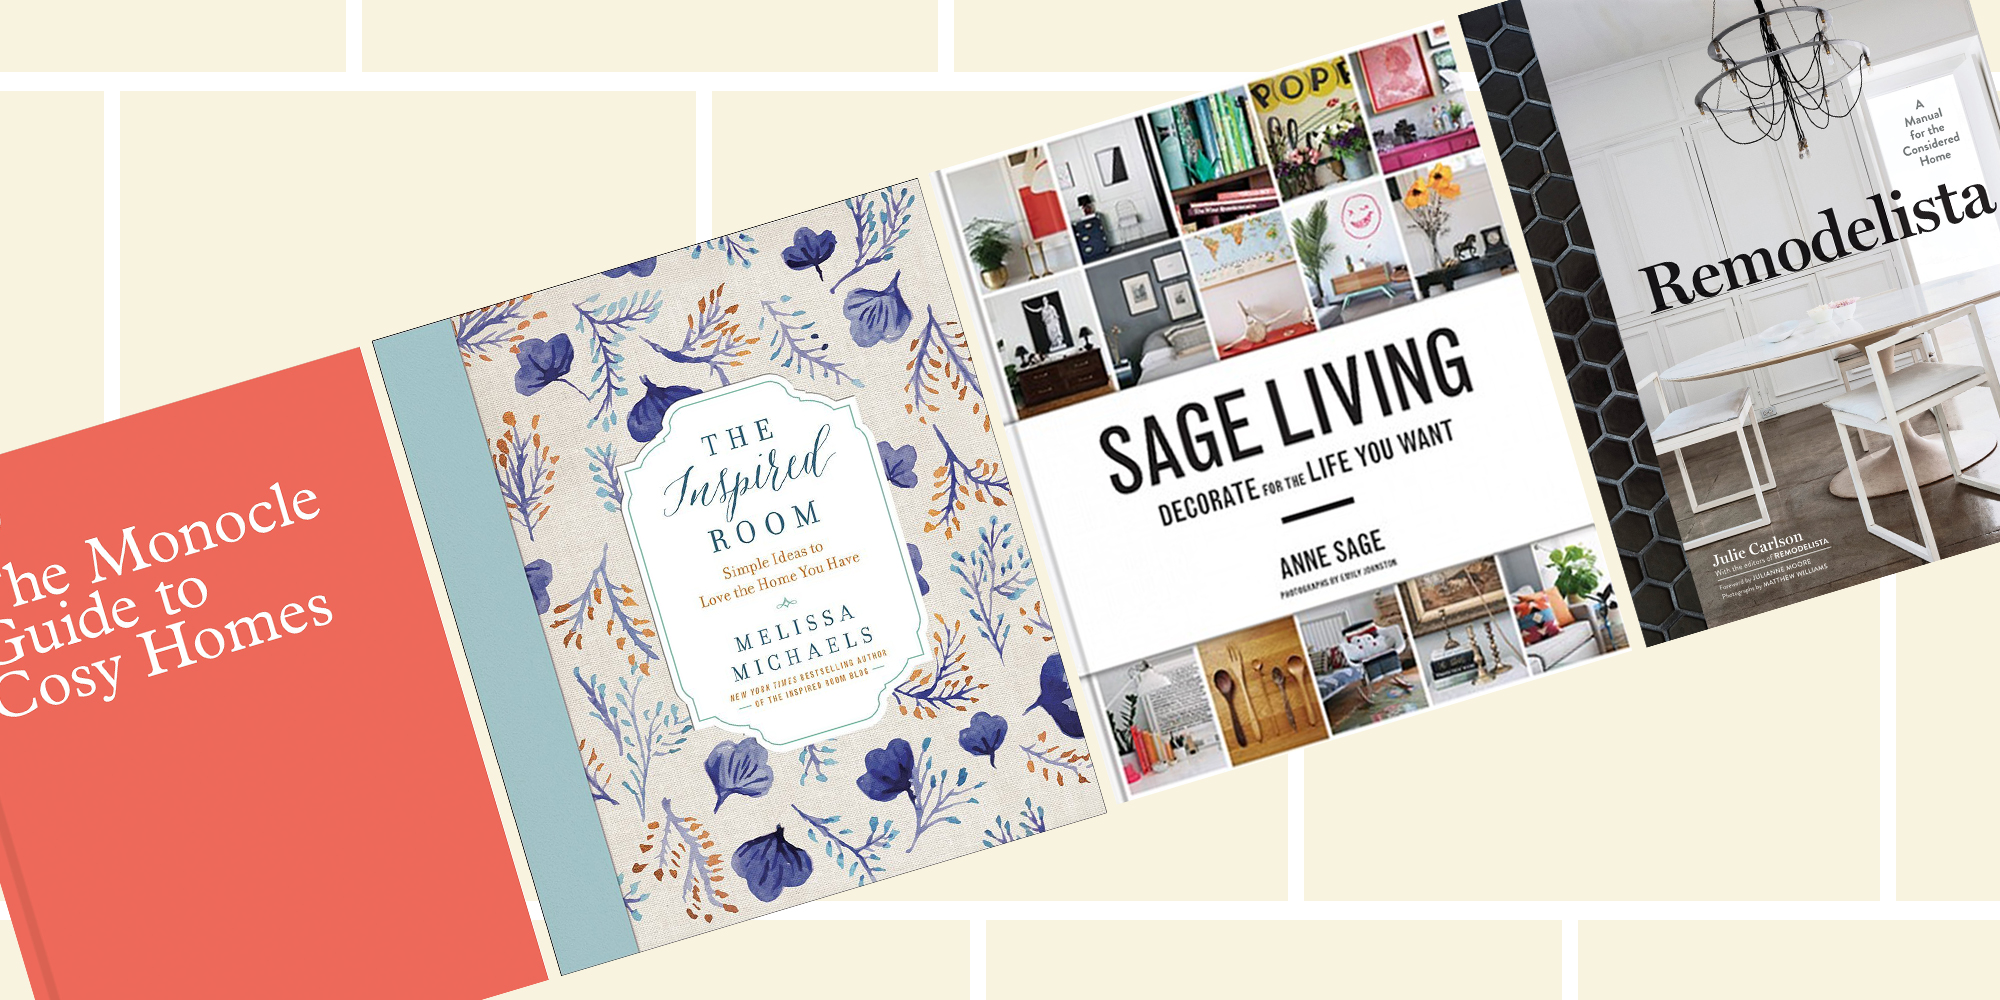 12 best interior design books of 2017 top books for home